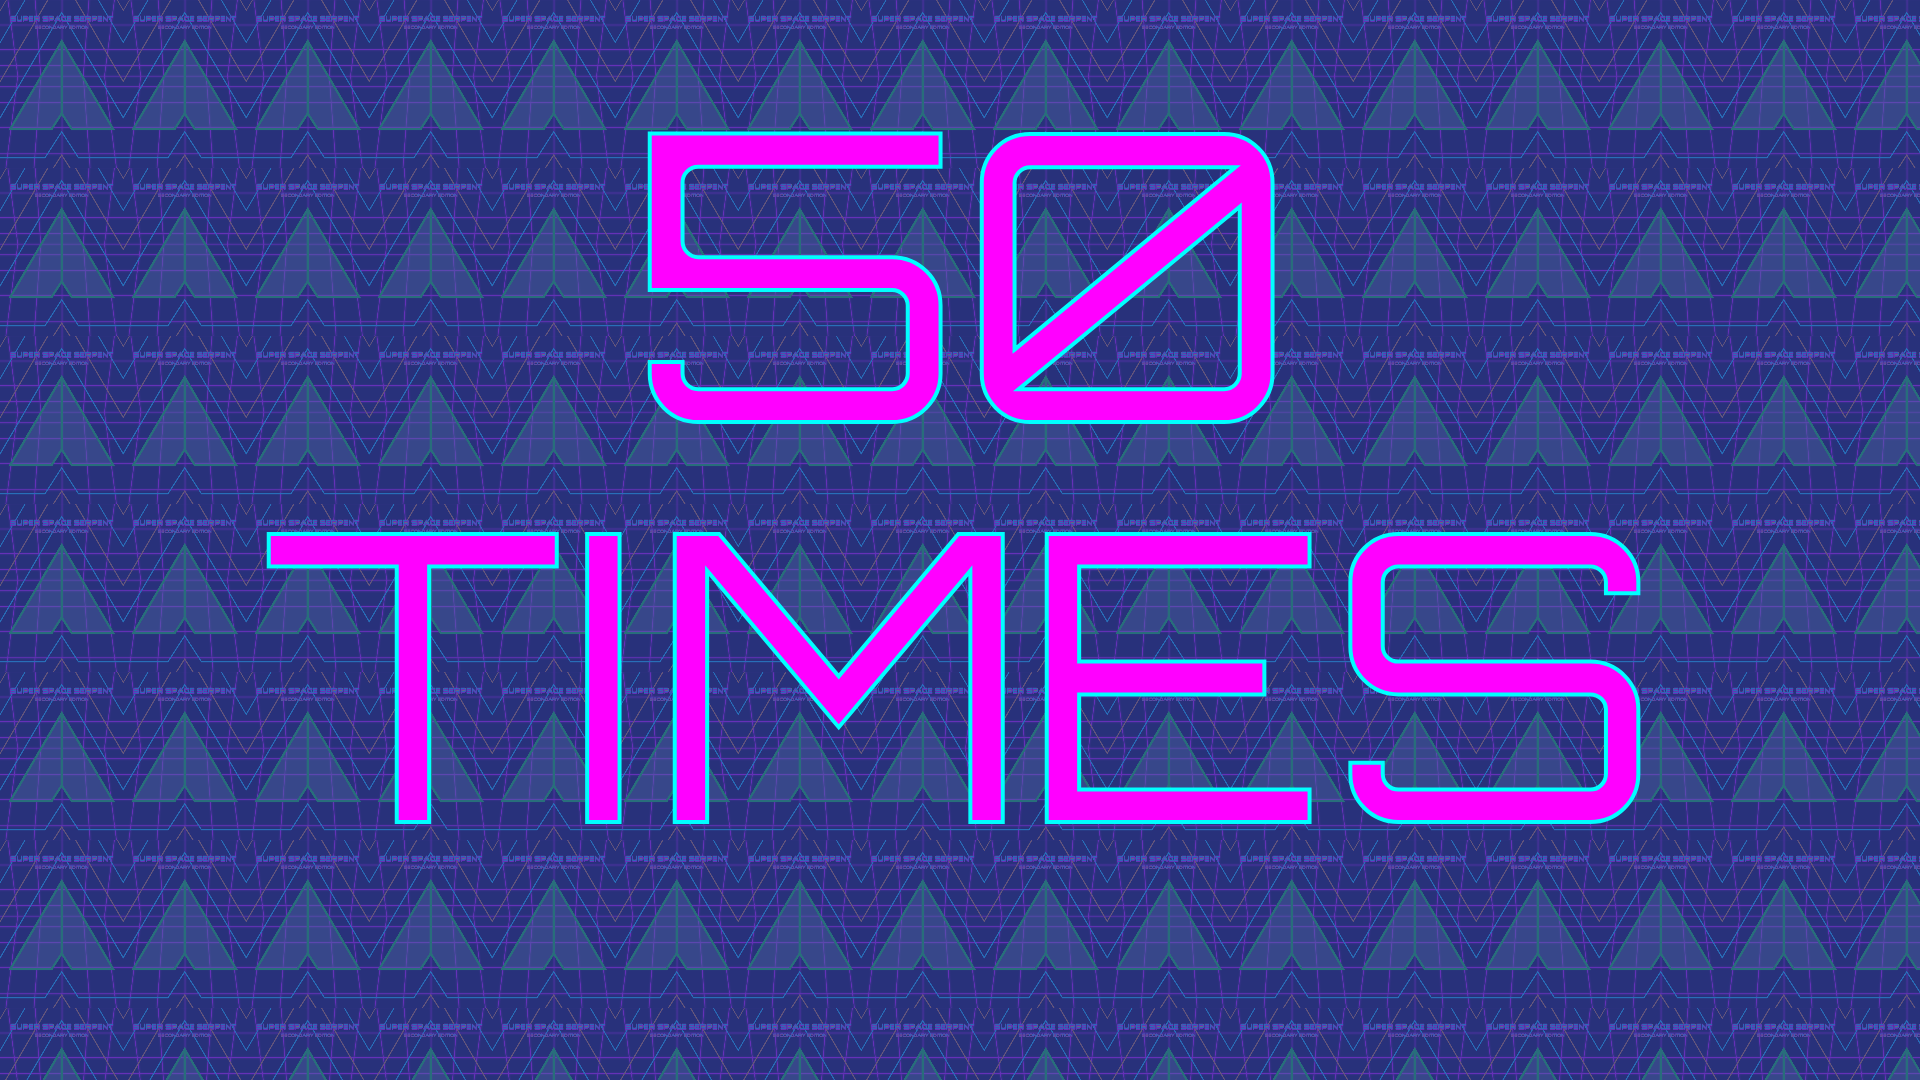 Icon for Played 50 times